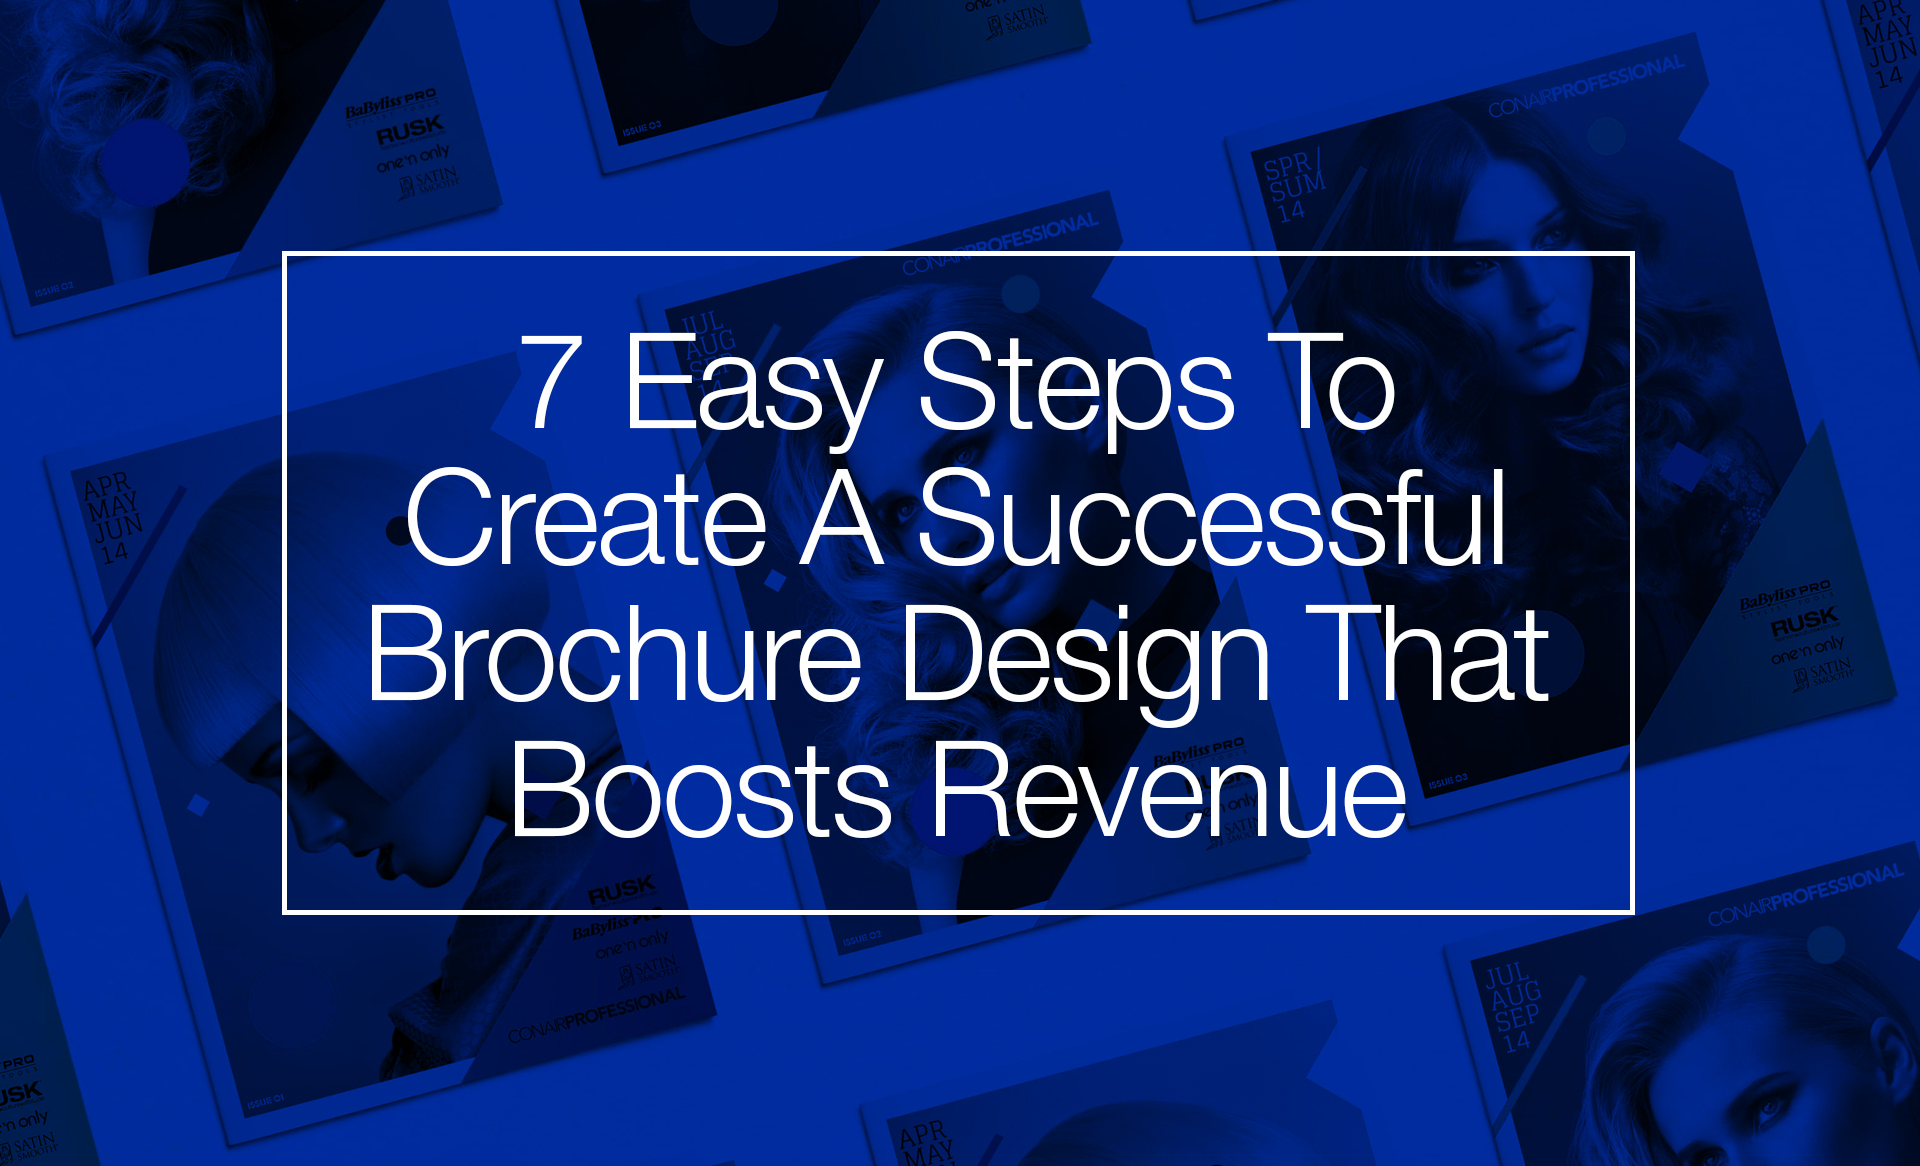 7 Easy Steps To Create A Brochure That Boosts Revenue